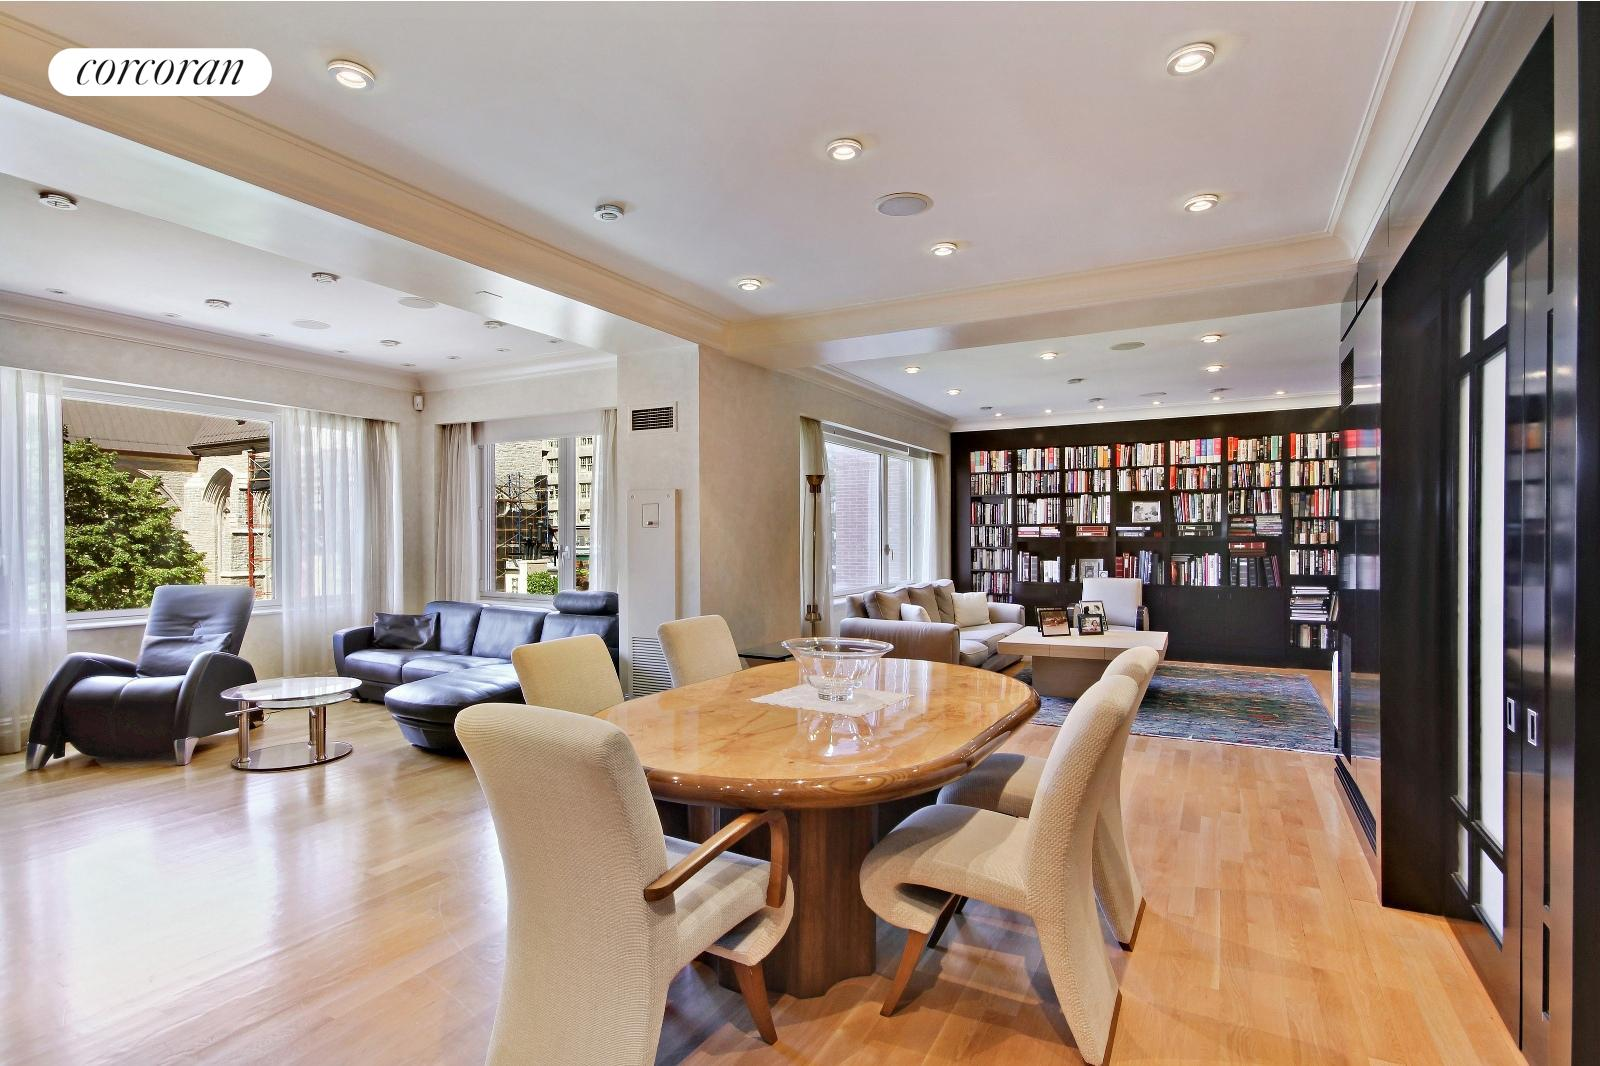 Corcoran 181 east 65th street apt 6a upper east side for Upper east side apartments for sale